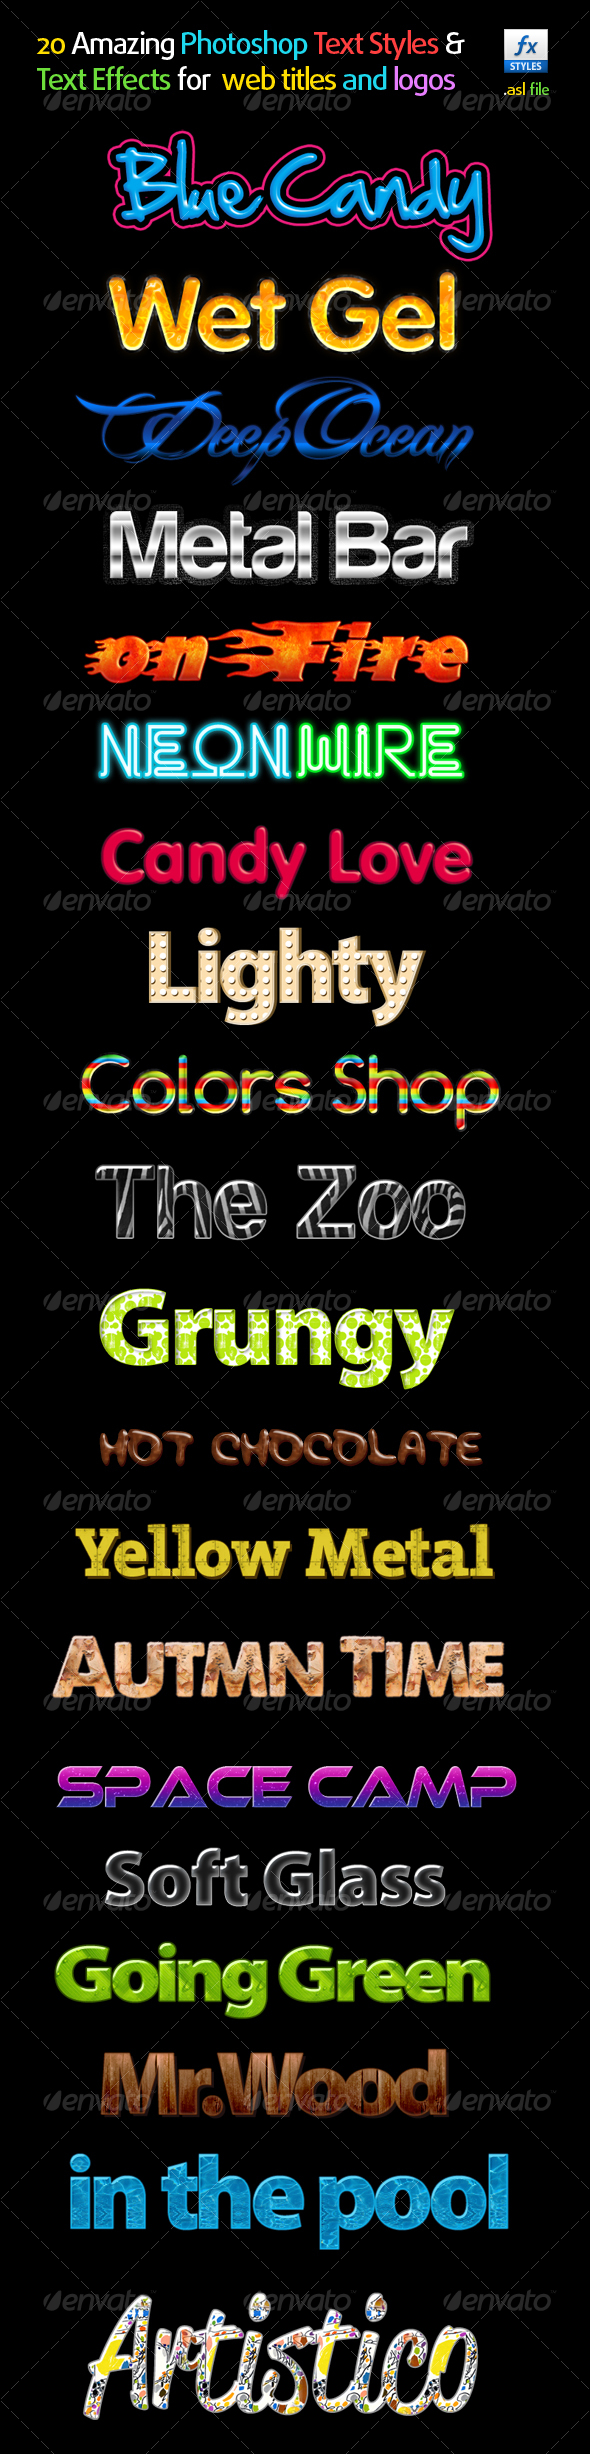 GraphicRiver 20 Amazing Photoshop Text Styles &Text Effects 116522